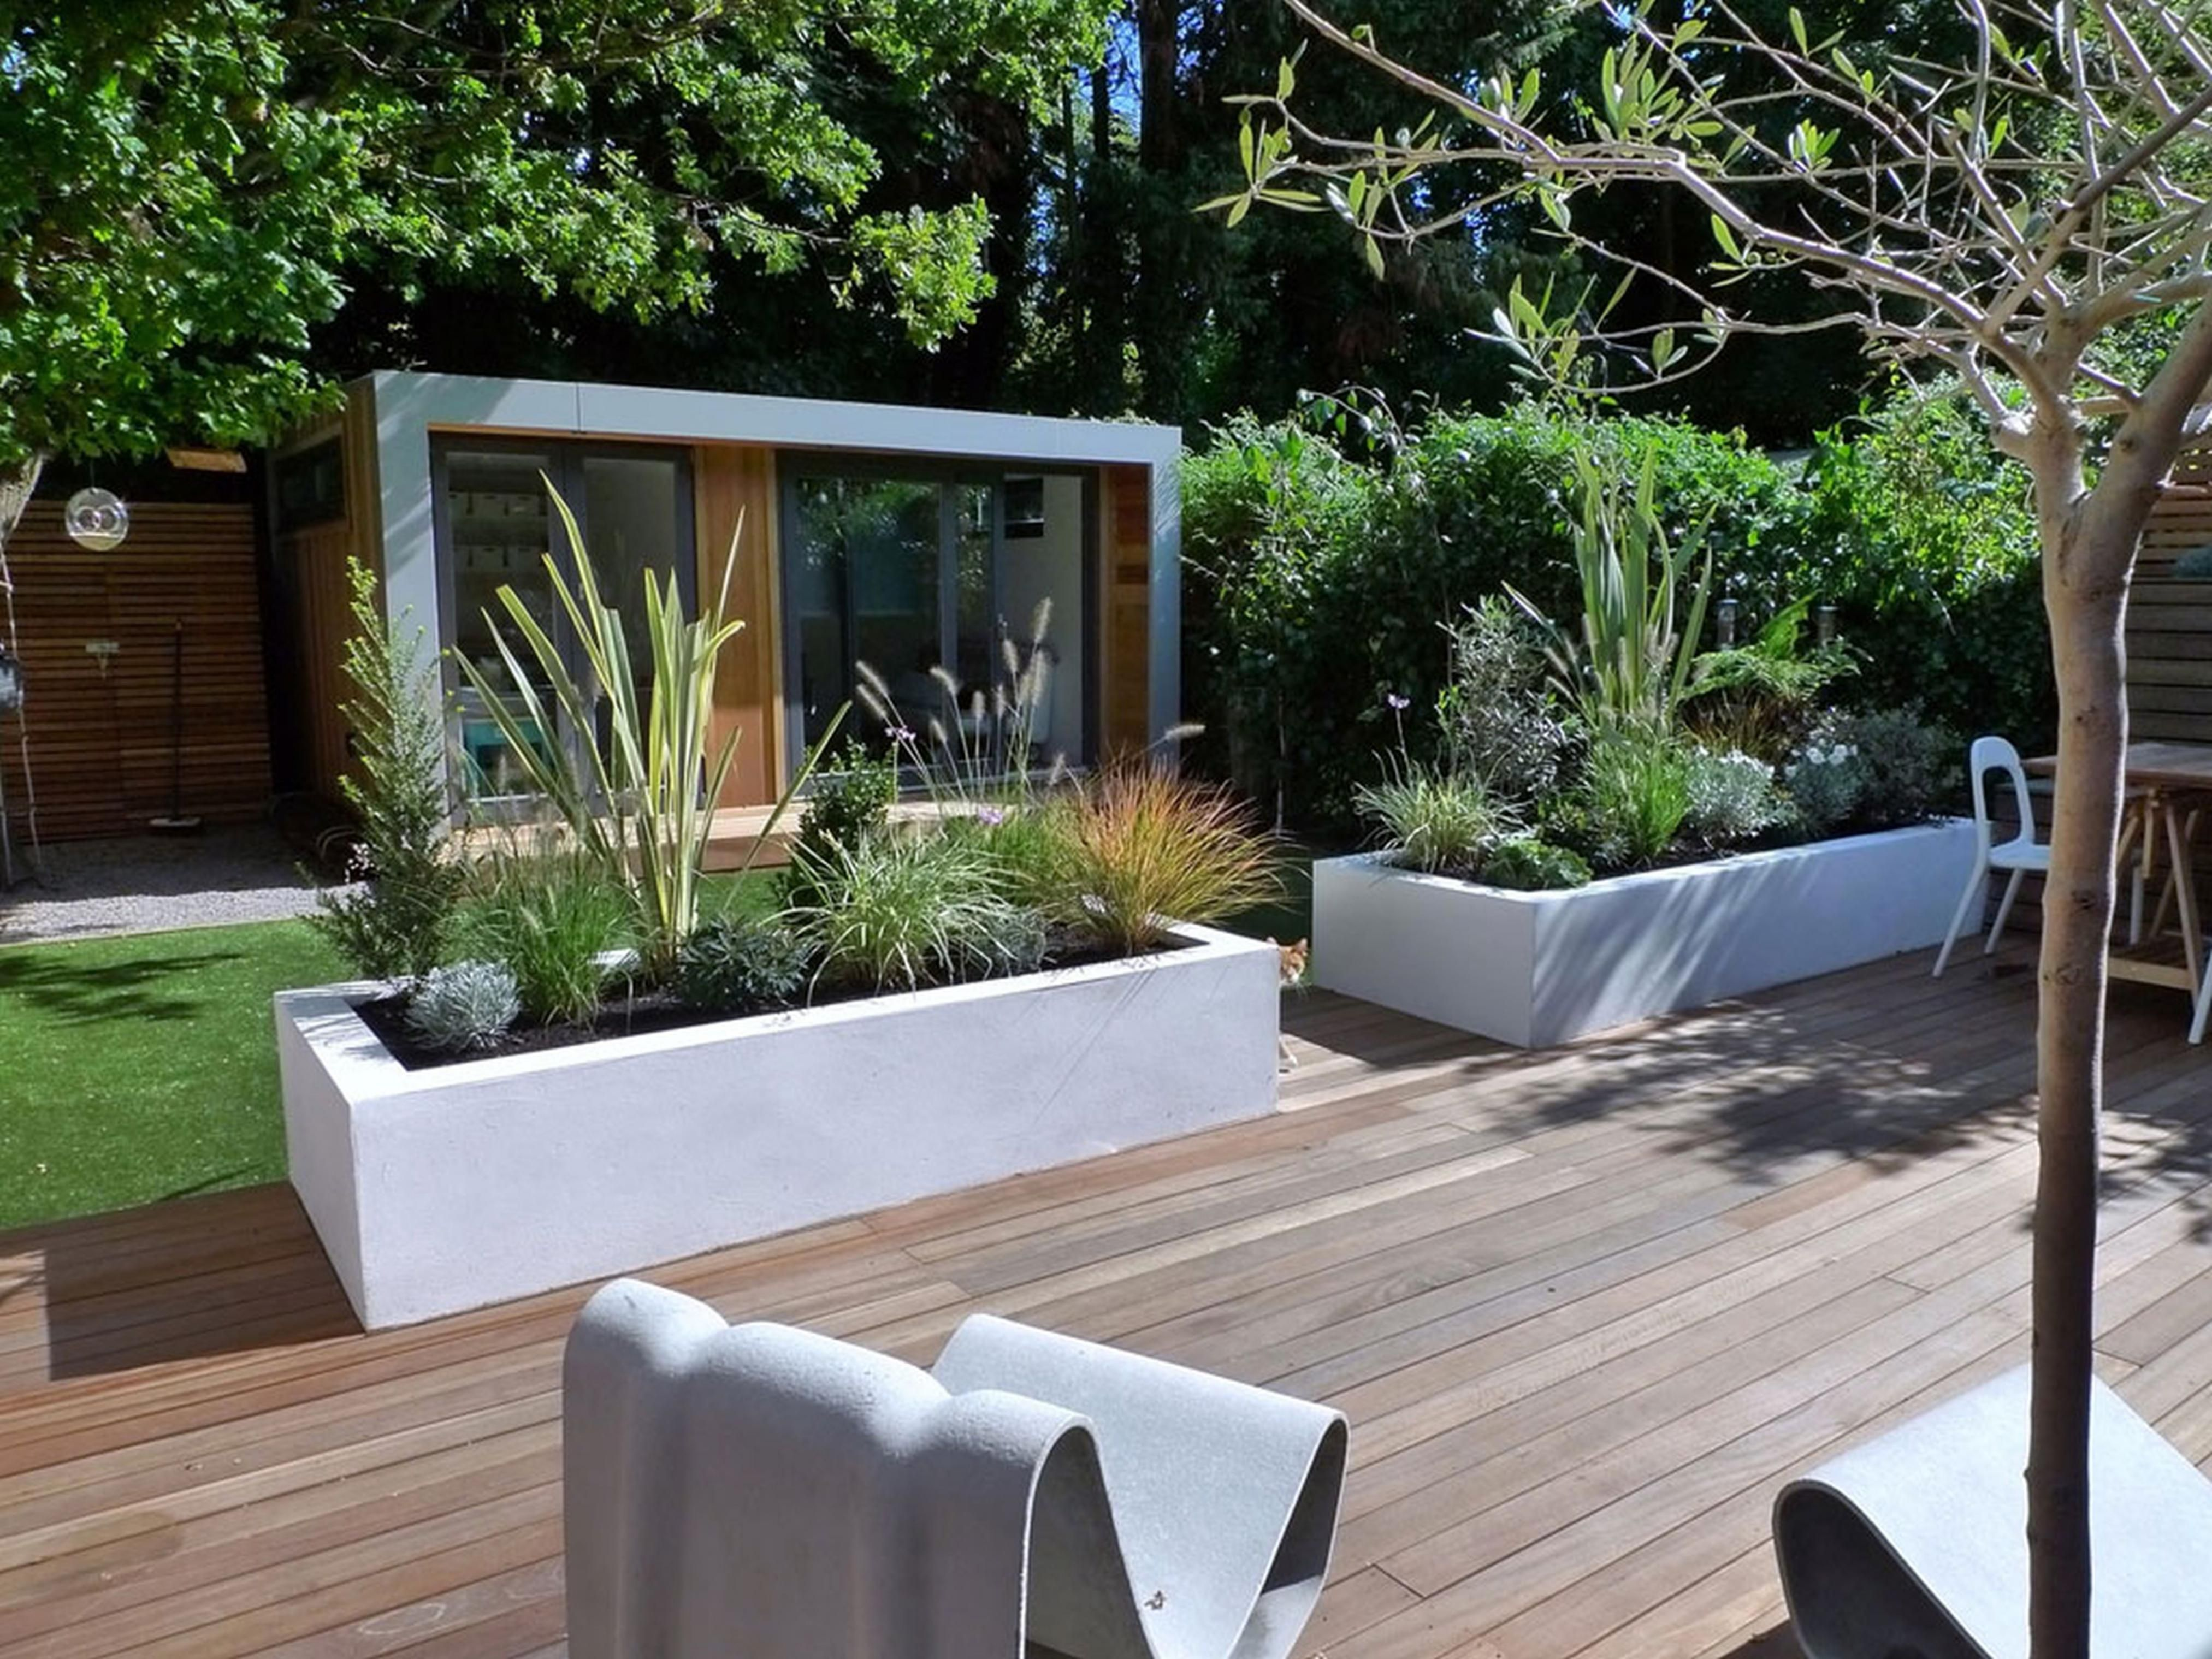 Awesome Small Terraced House Front Garden Ideas | Tuin ideeën